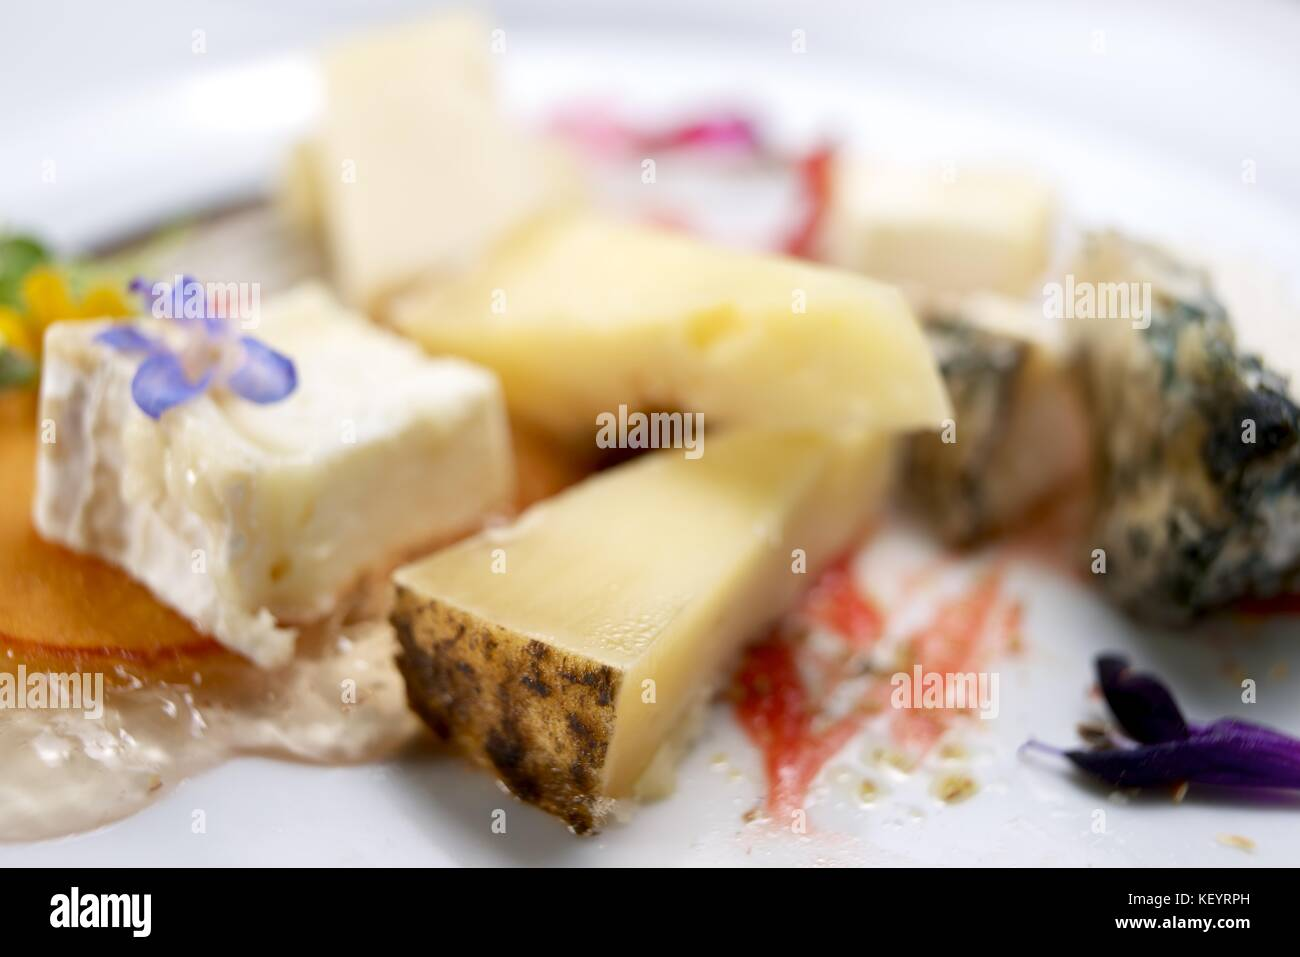 Lots of assorted cheese on a white table. - Stock Image